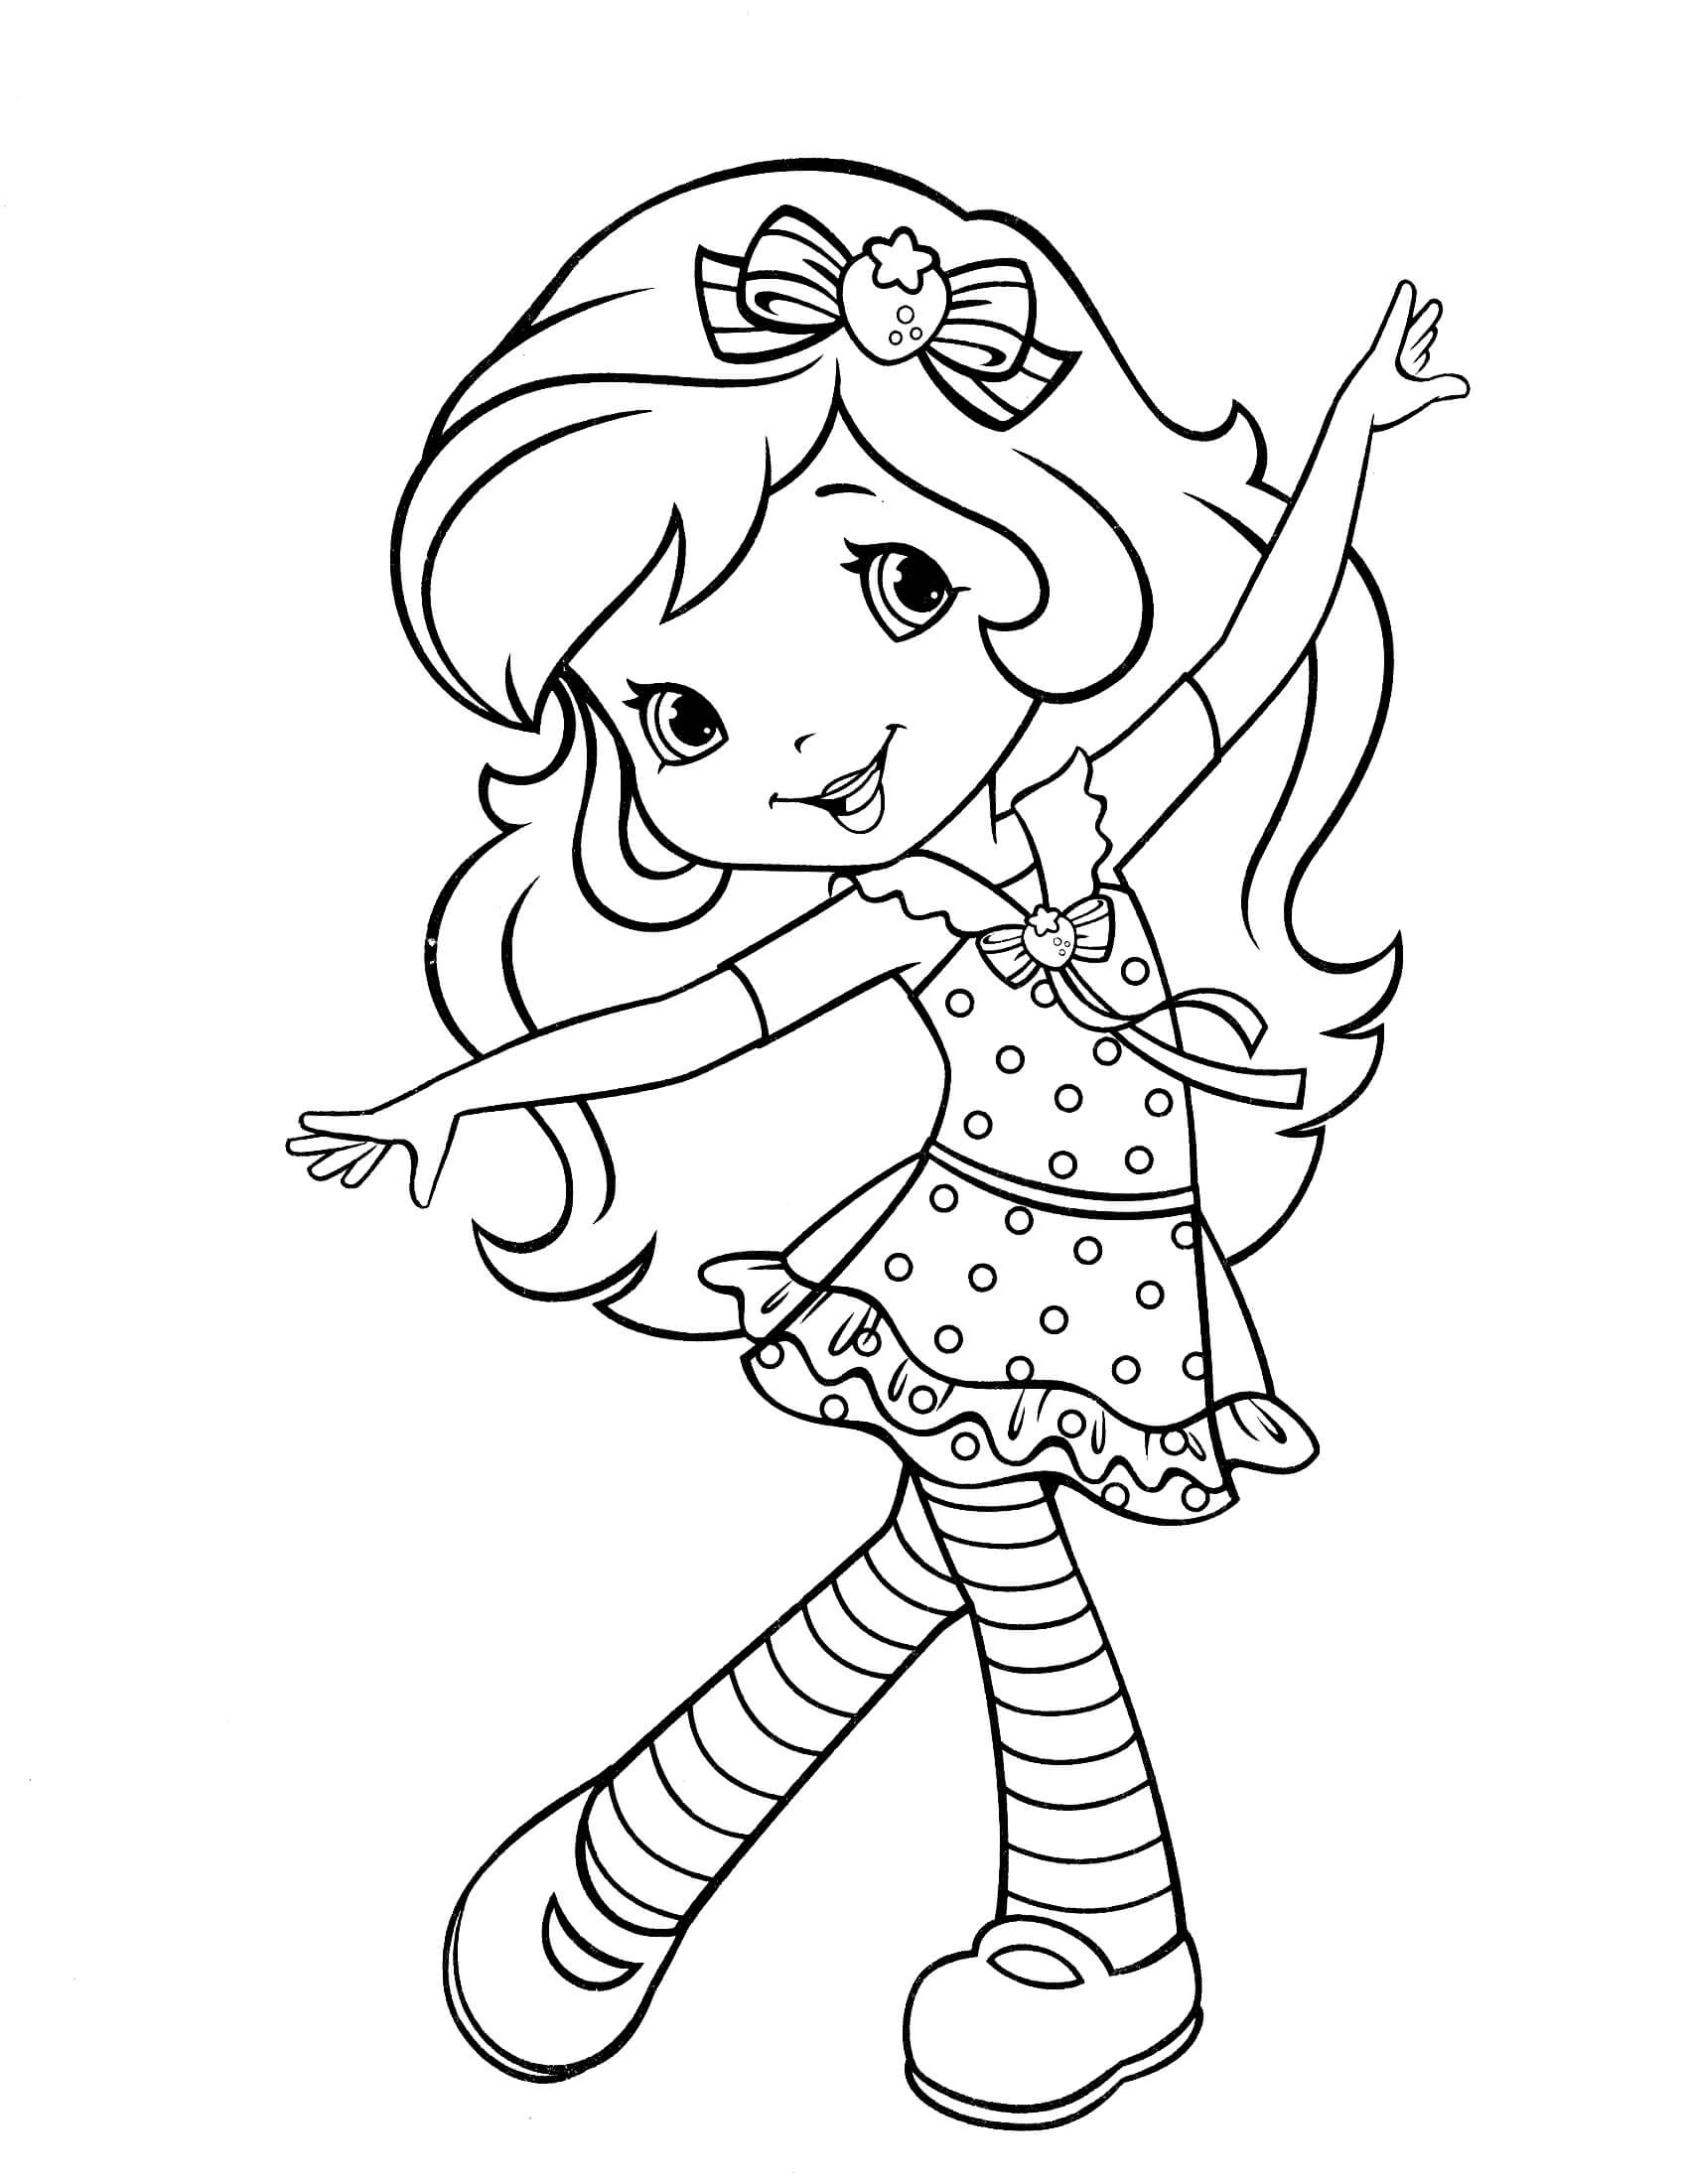 Strawberry Shortcake Coloring Page  Strawberry Shortcake 34 Coloringcolor